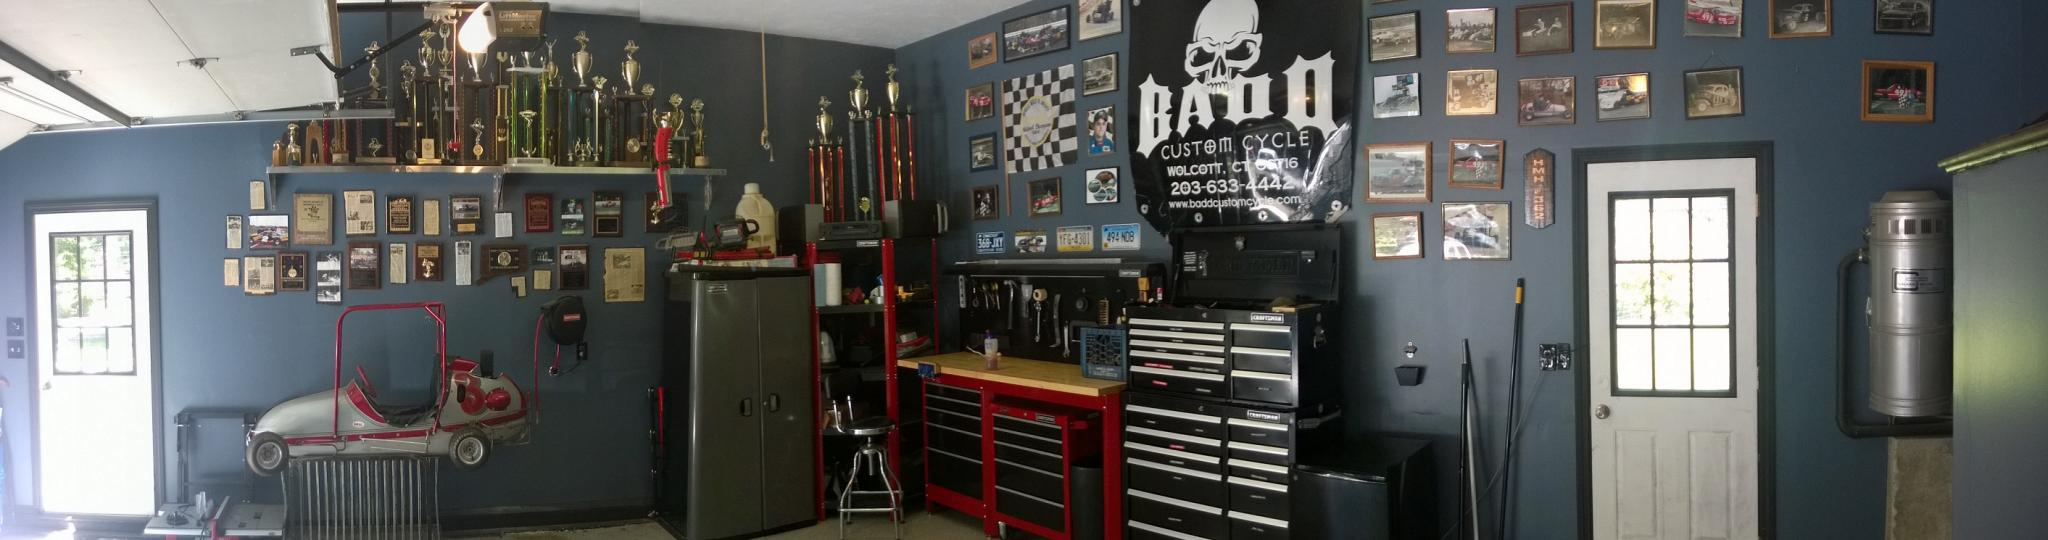 Looking for nice pictures of garages-wp_20140615_11_19_23_panorama1-jpg